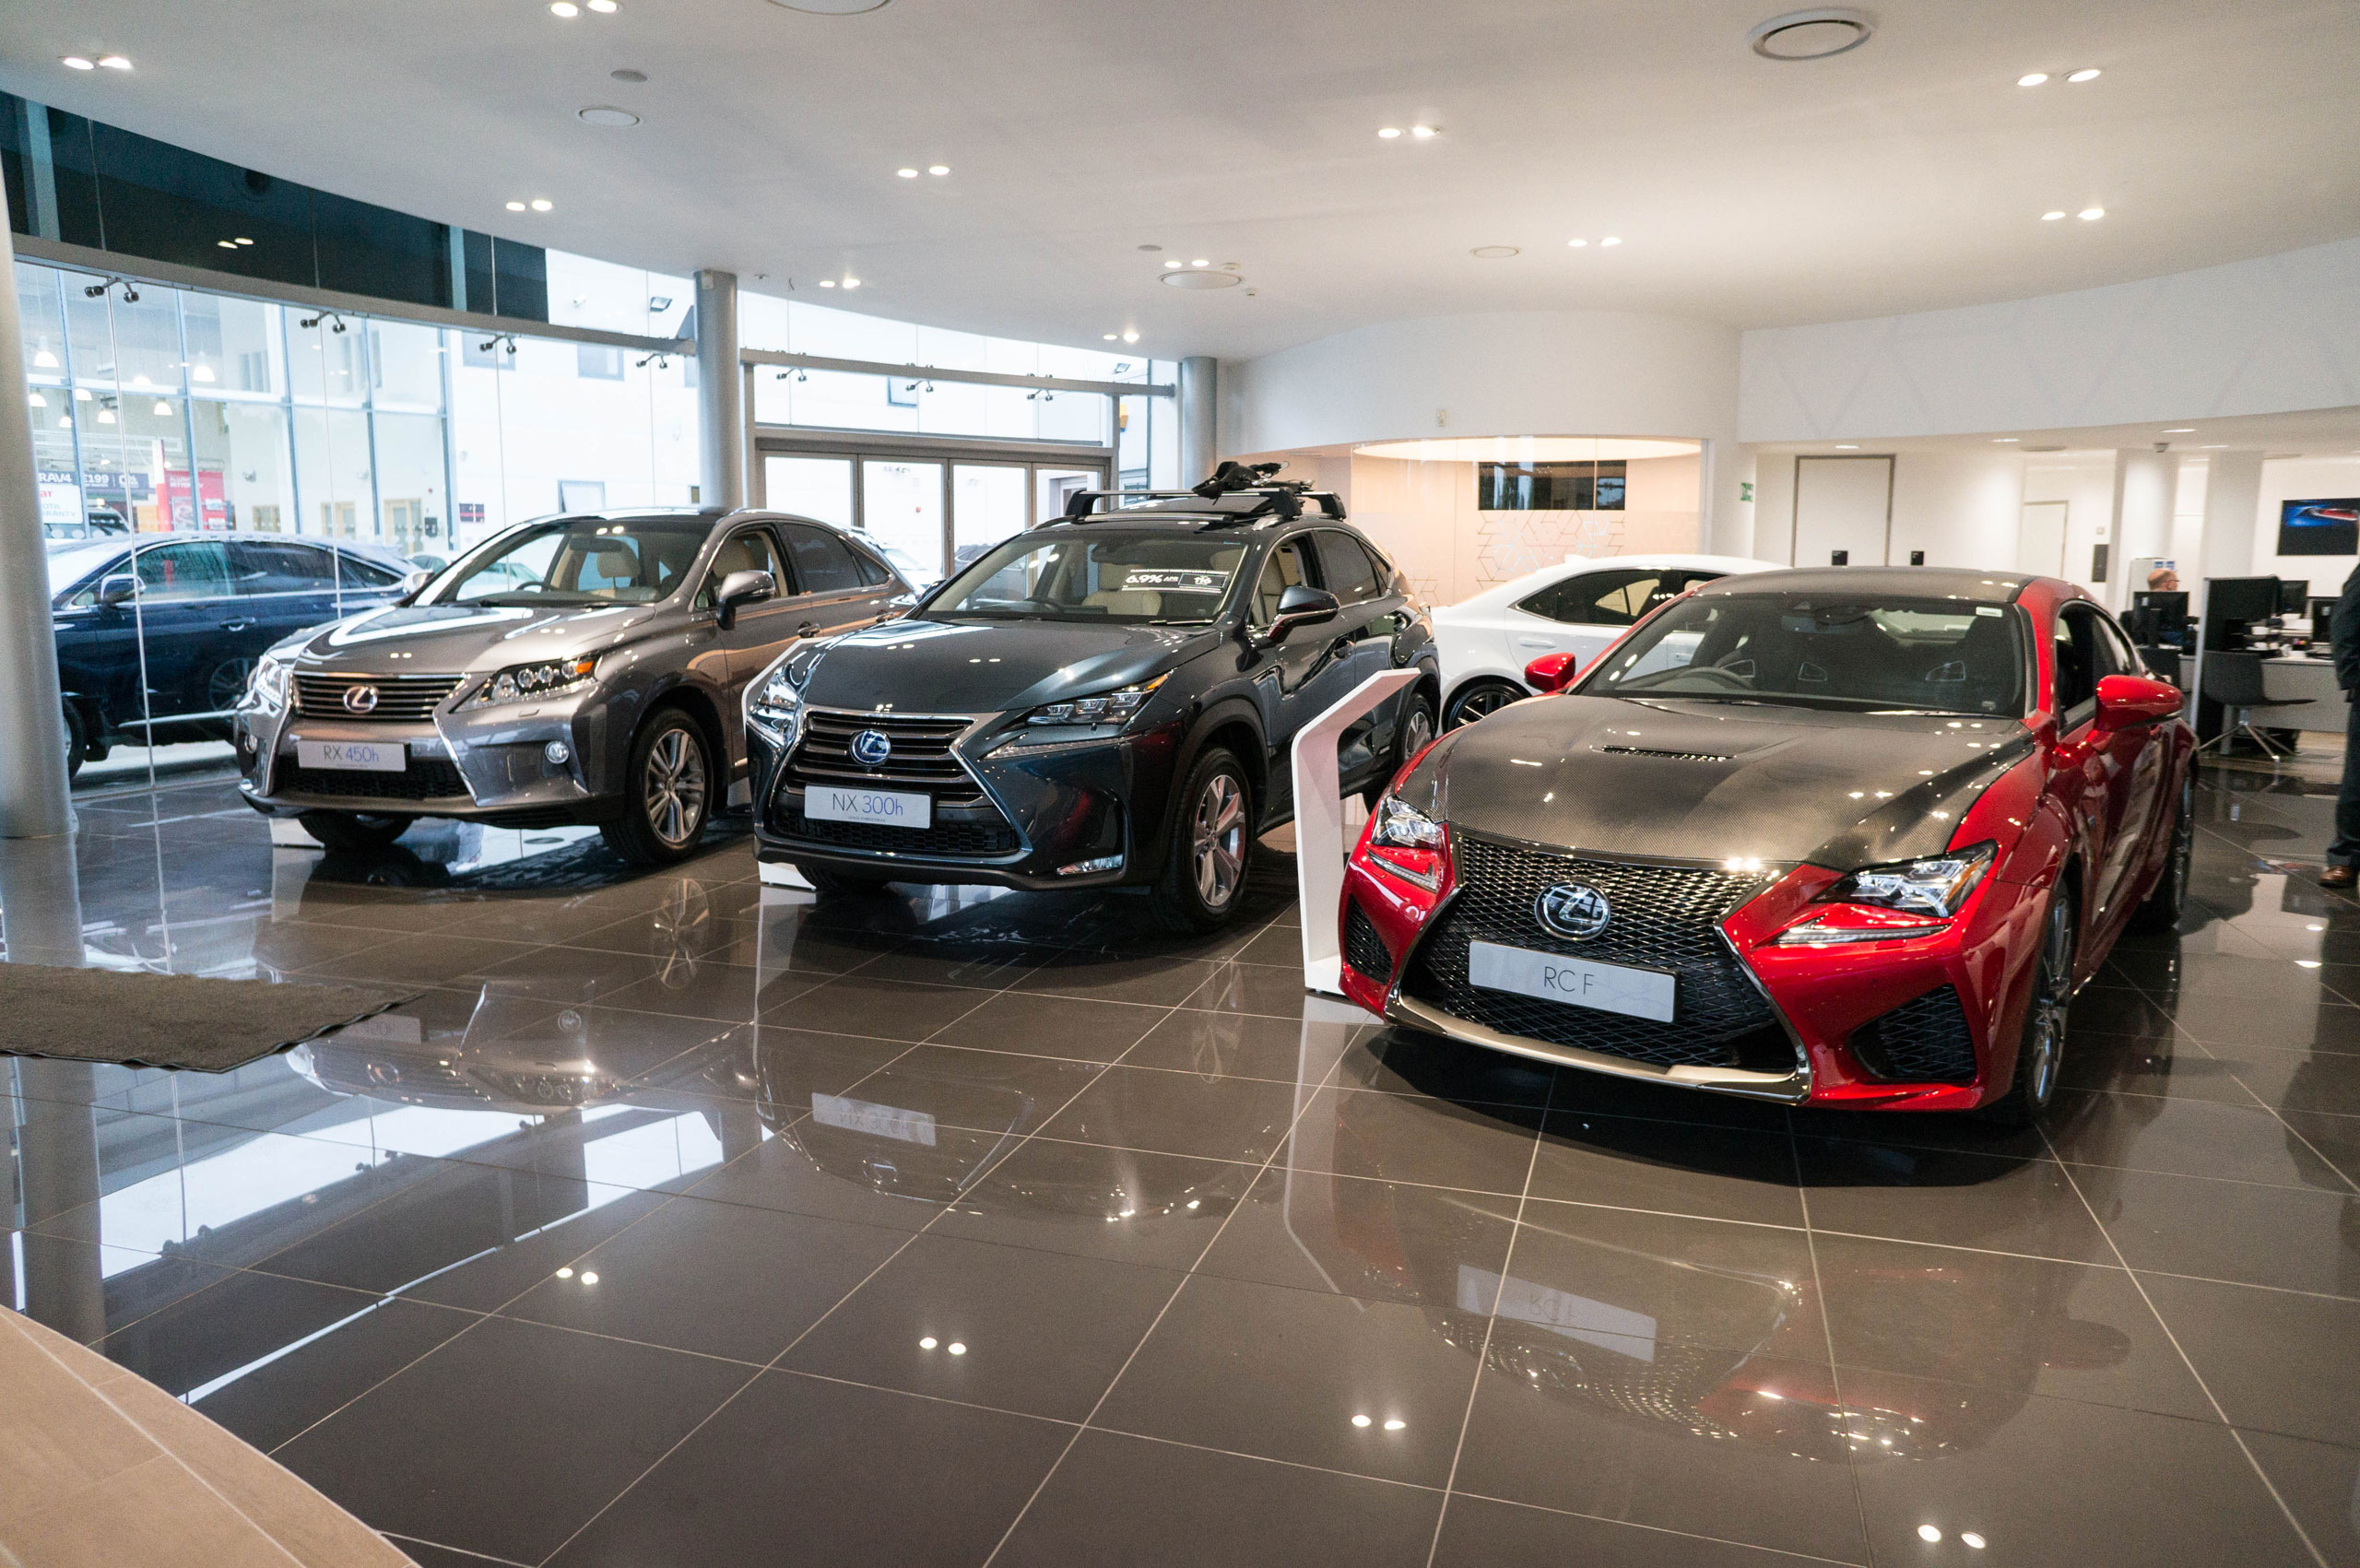 showing our digital september the group in consumer u are lexus improvement economic showrooms confidence fourth further sales is cars optimism bmw series indicators encouraging used and reports traffic s dealer for jm